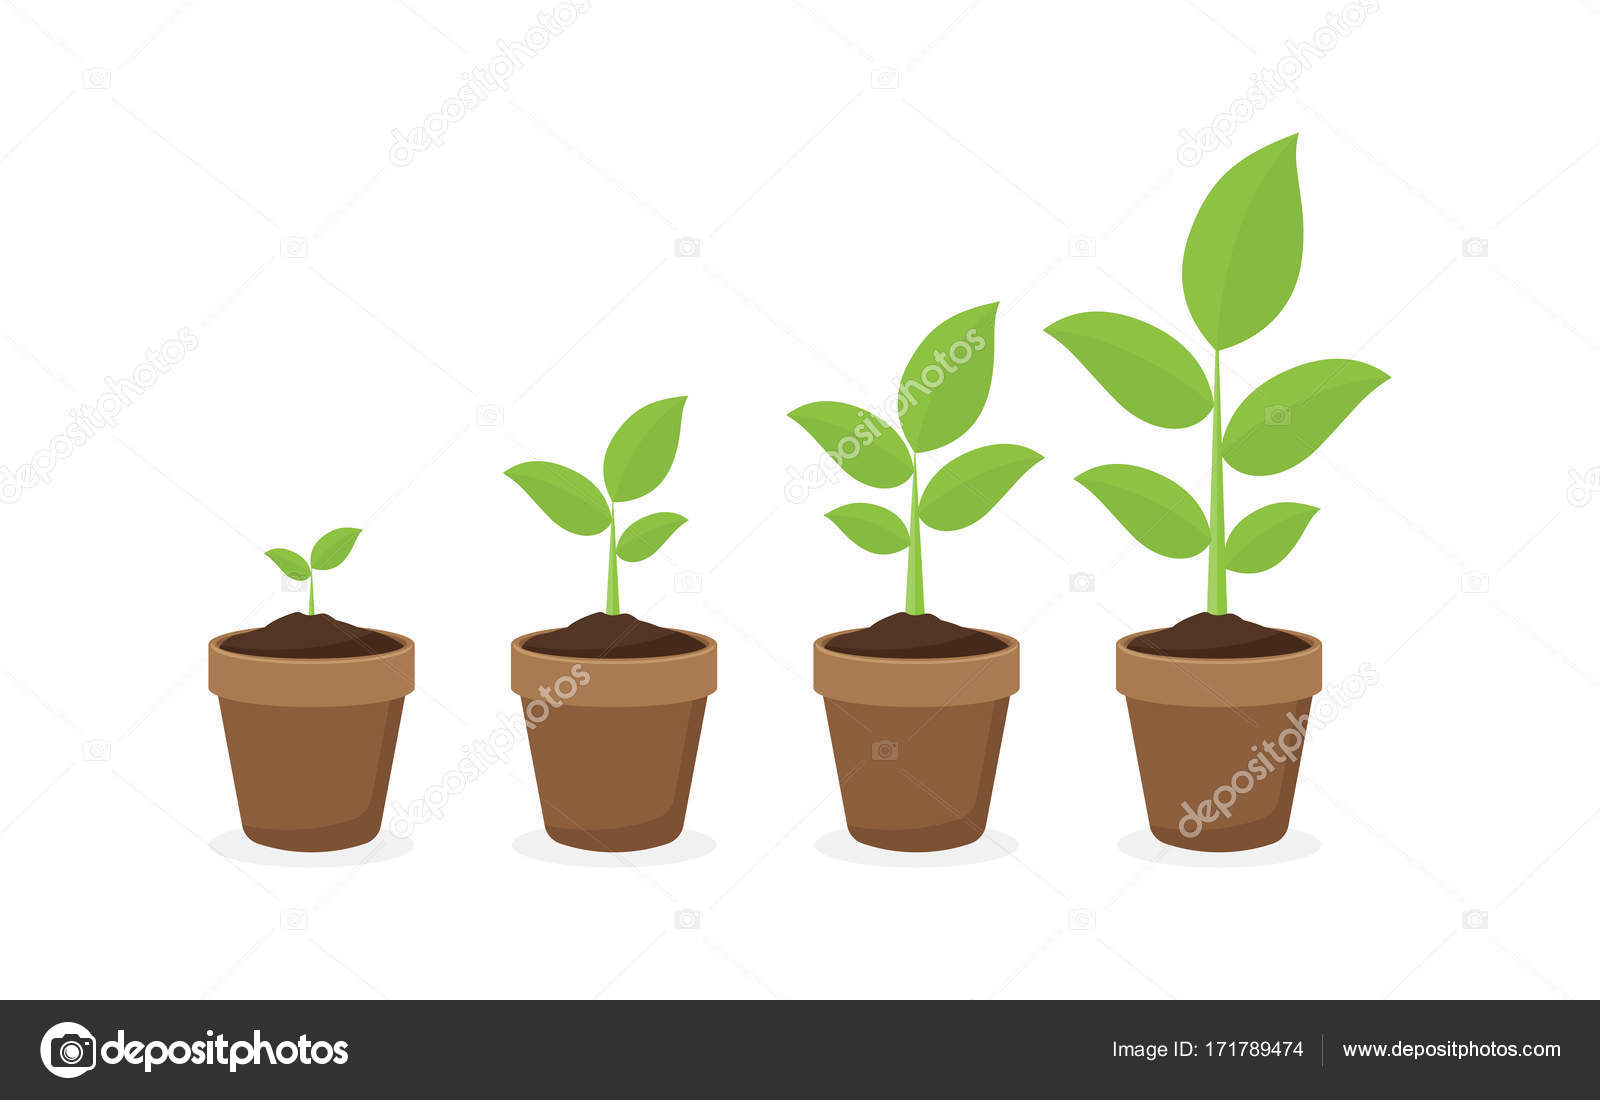 tie plant chat Join plant nite nationsubscribe to our emails and get a great discount on your first creative nite out, plus access to exclusive deals.